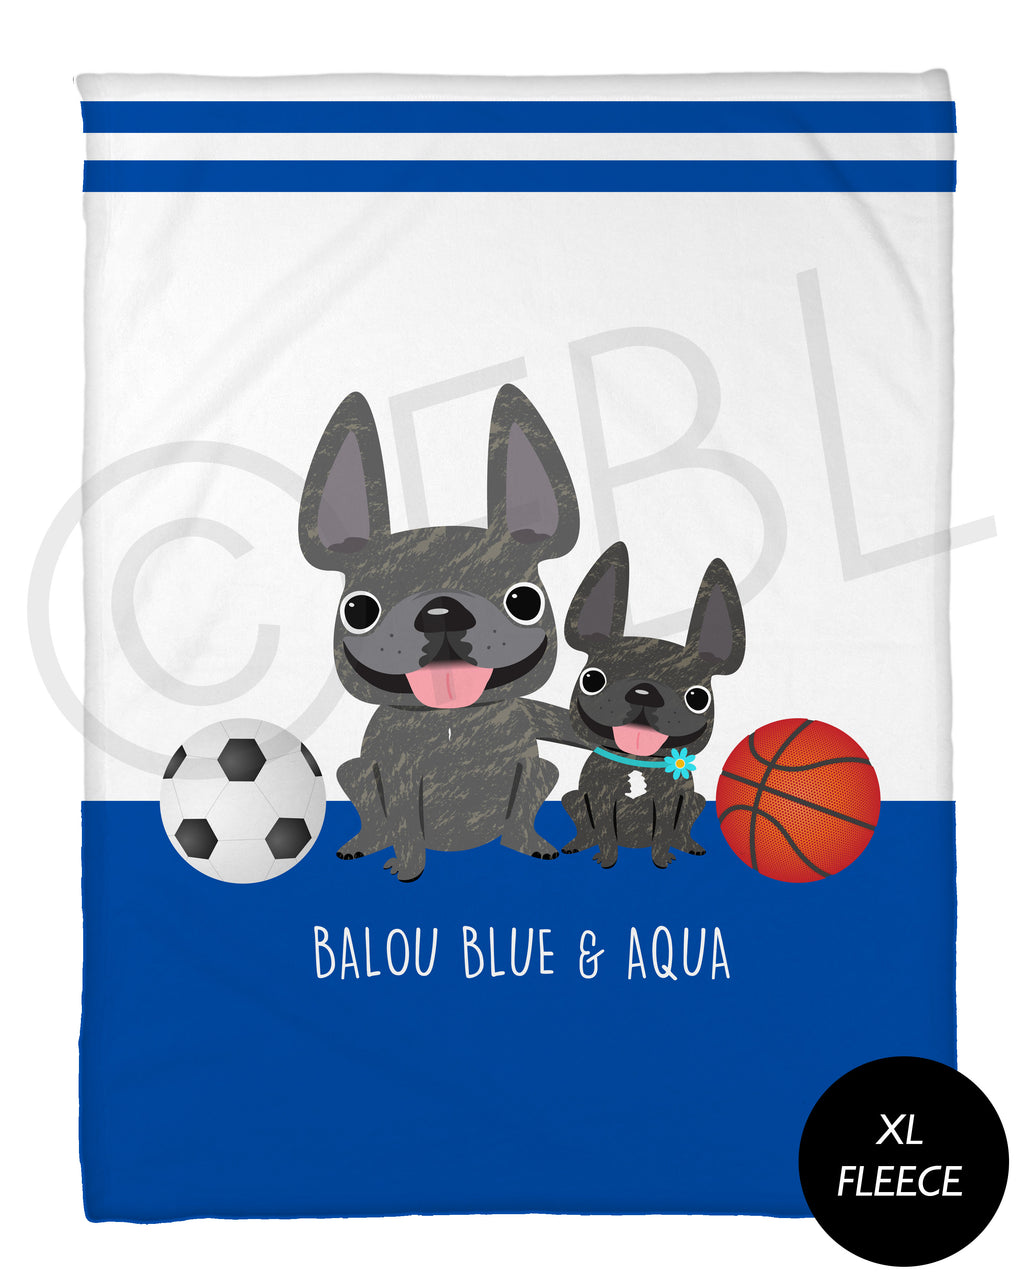 FBL Exclusive - @Baloublue - Balou & Aqua Fleece Blanket - XL